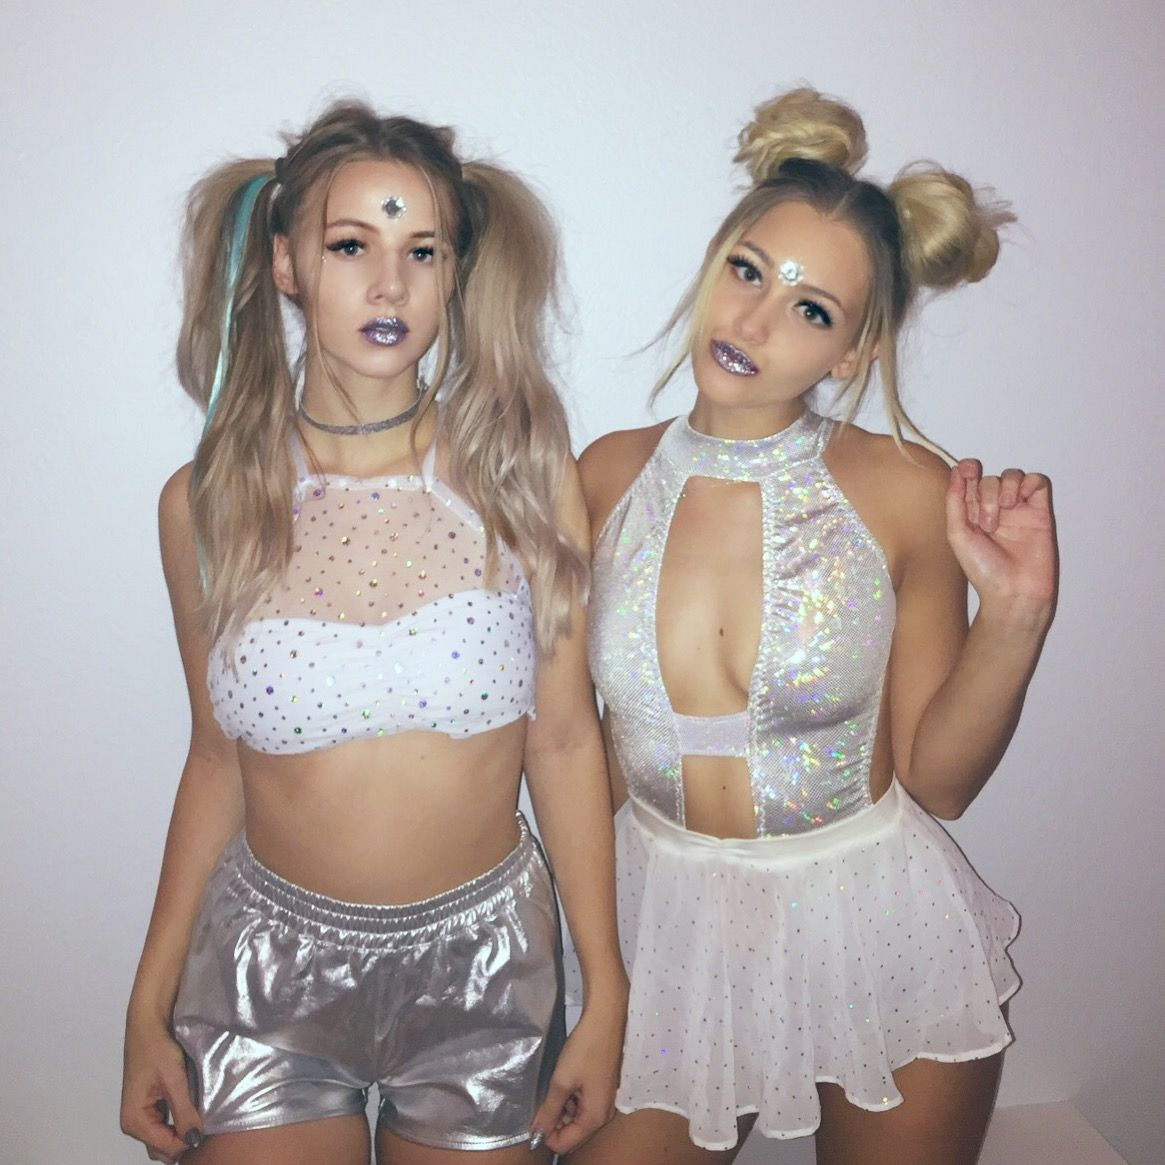 Cute Rave Party Outfits-20 Ideas What To Wear For Rave Party picture